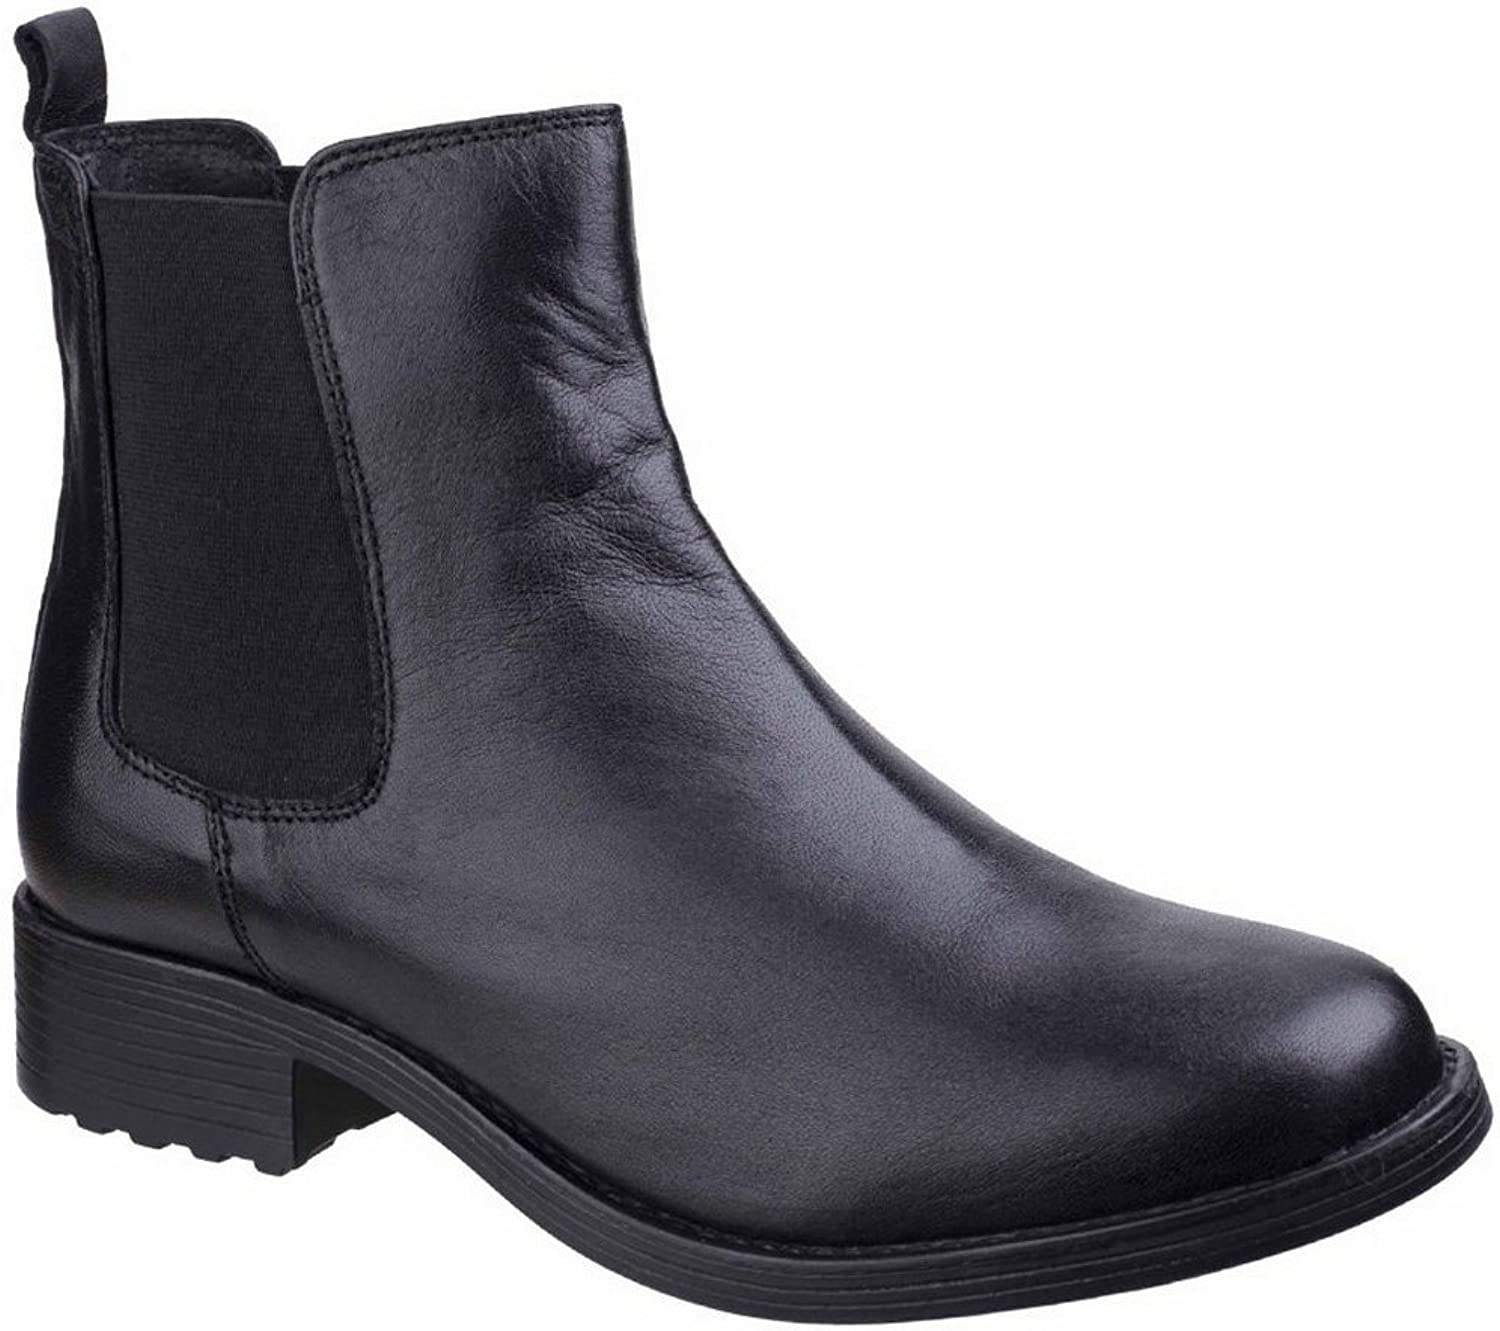 Fleet & Foster Womens Ladies Cambridge Waterproof Leather Chelsea Boots